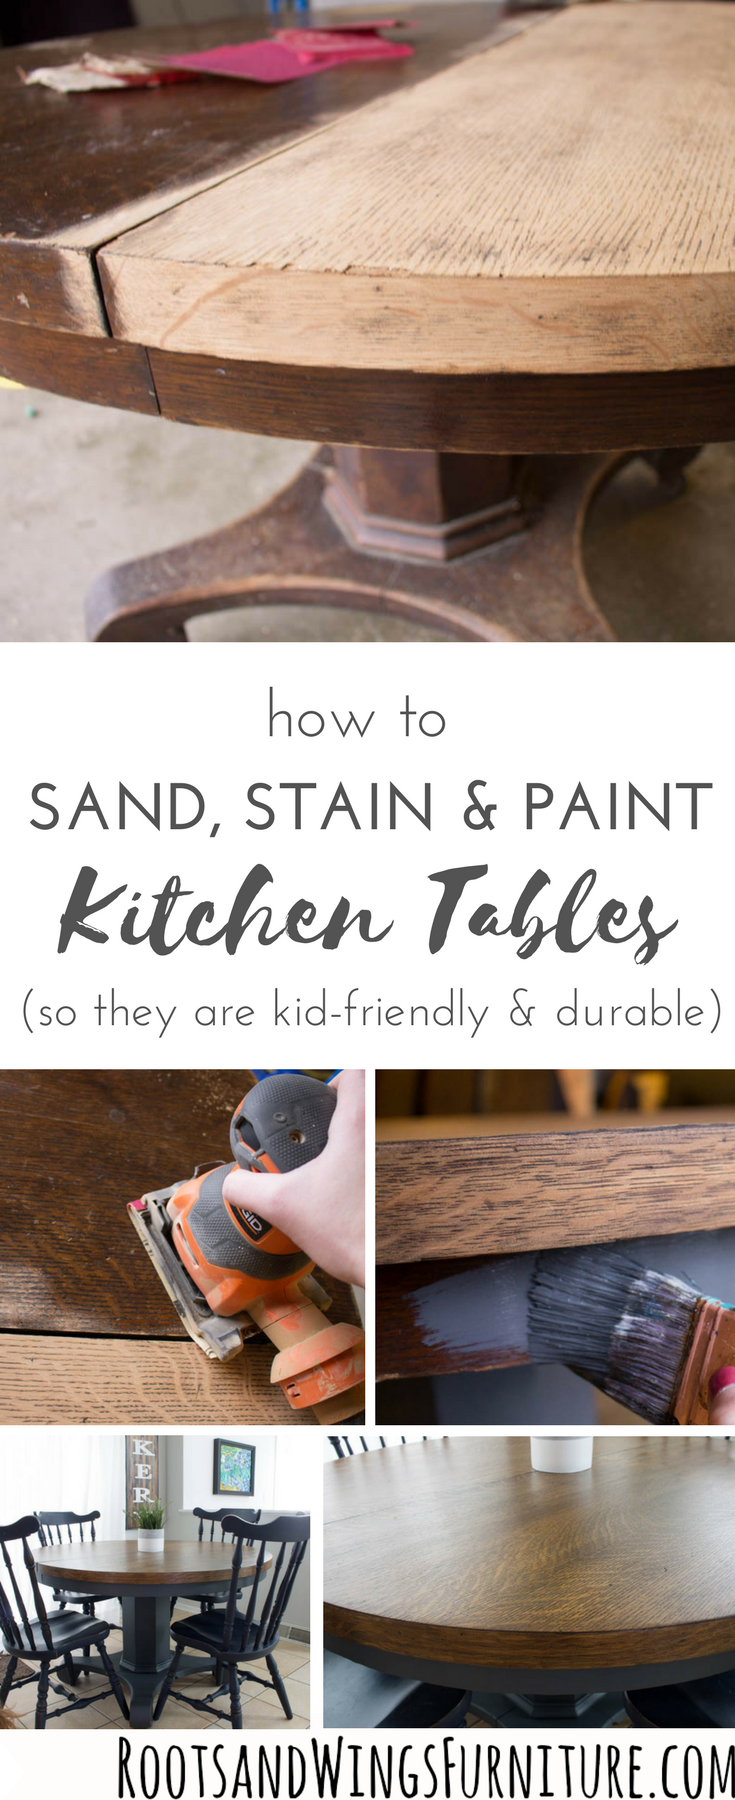 How to Sand, Stain and Paint Kitchen Tables so they are kid-friendly and durable by Roots and Wings Furniture - Table Makeover.png